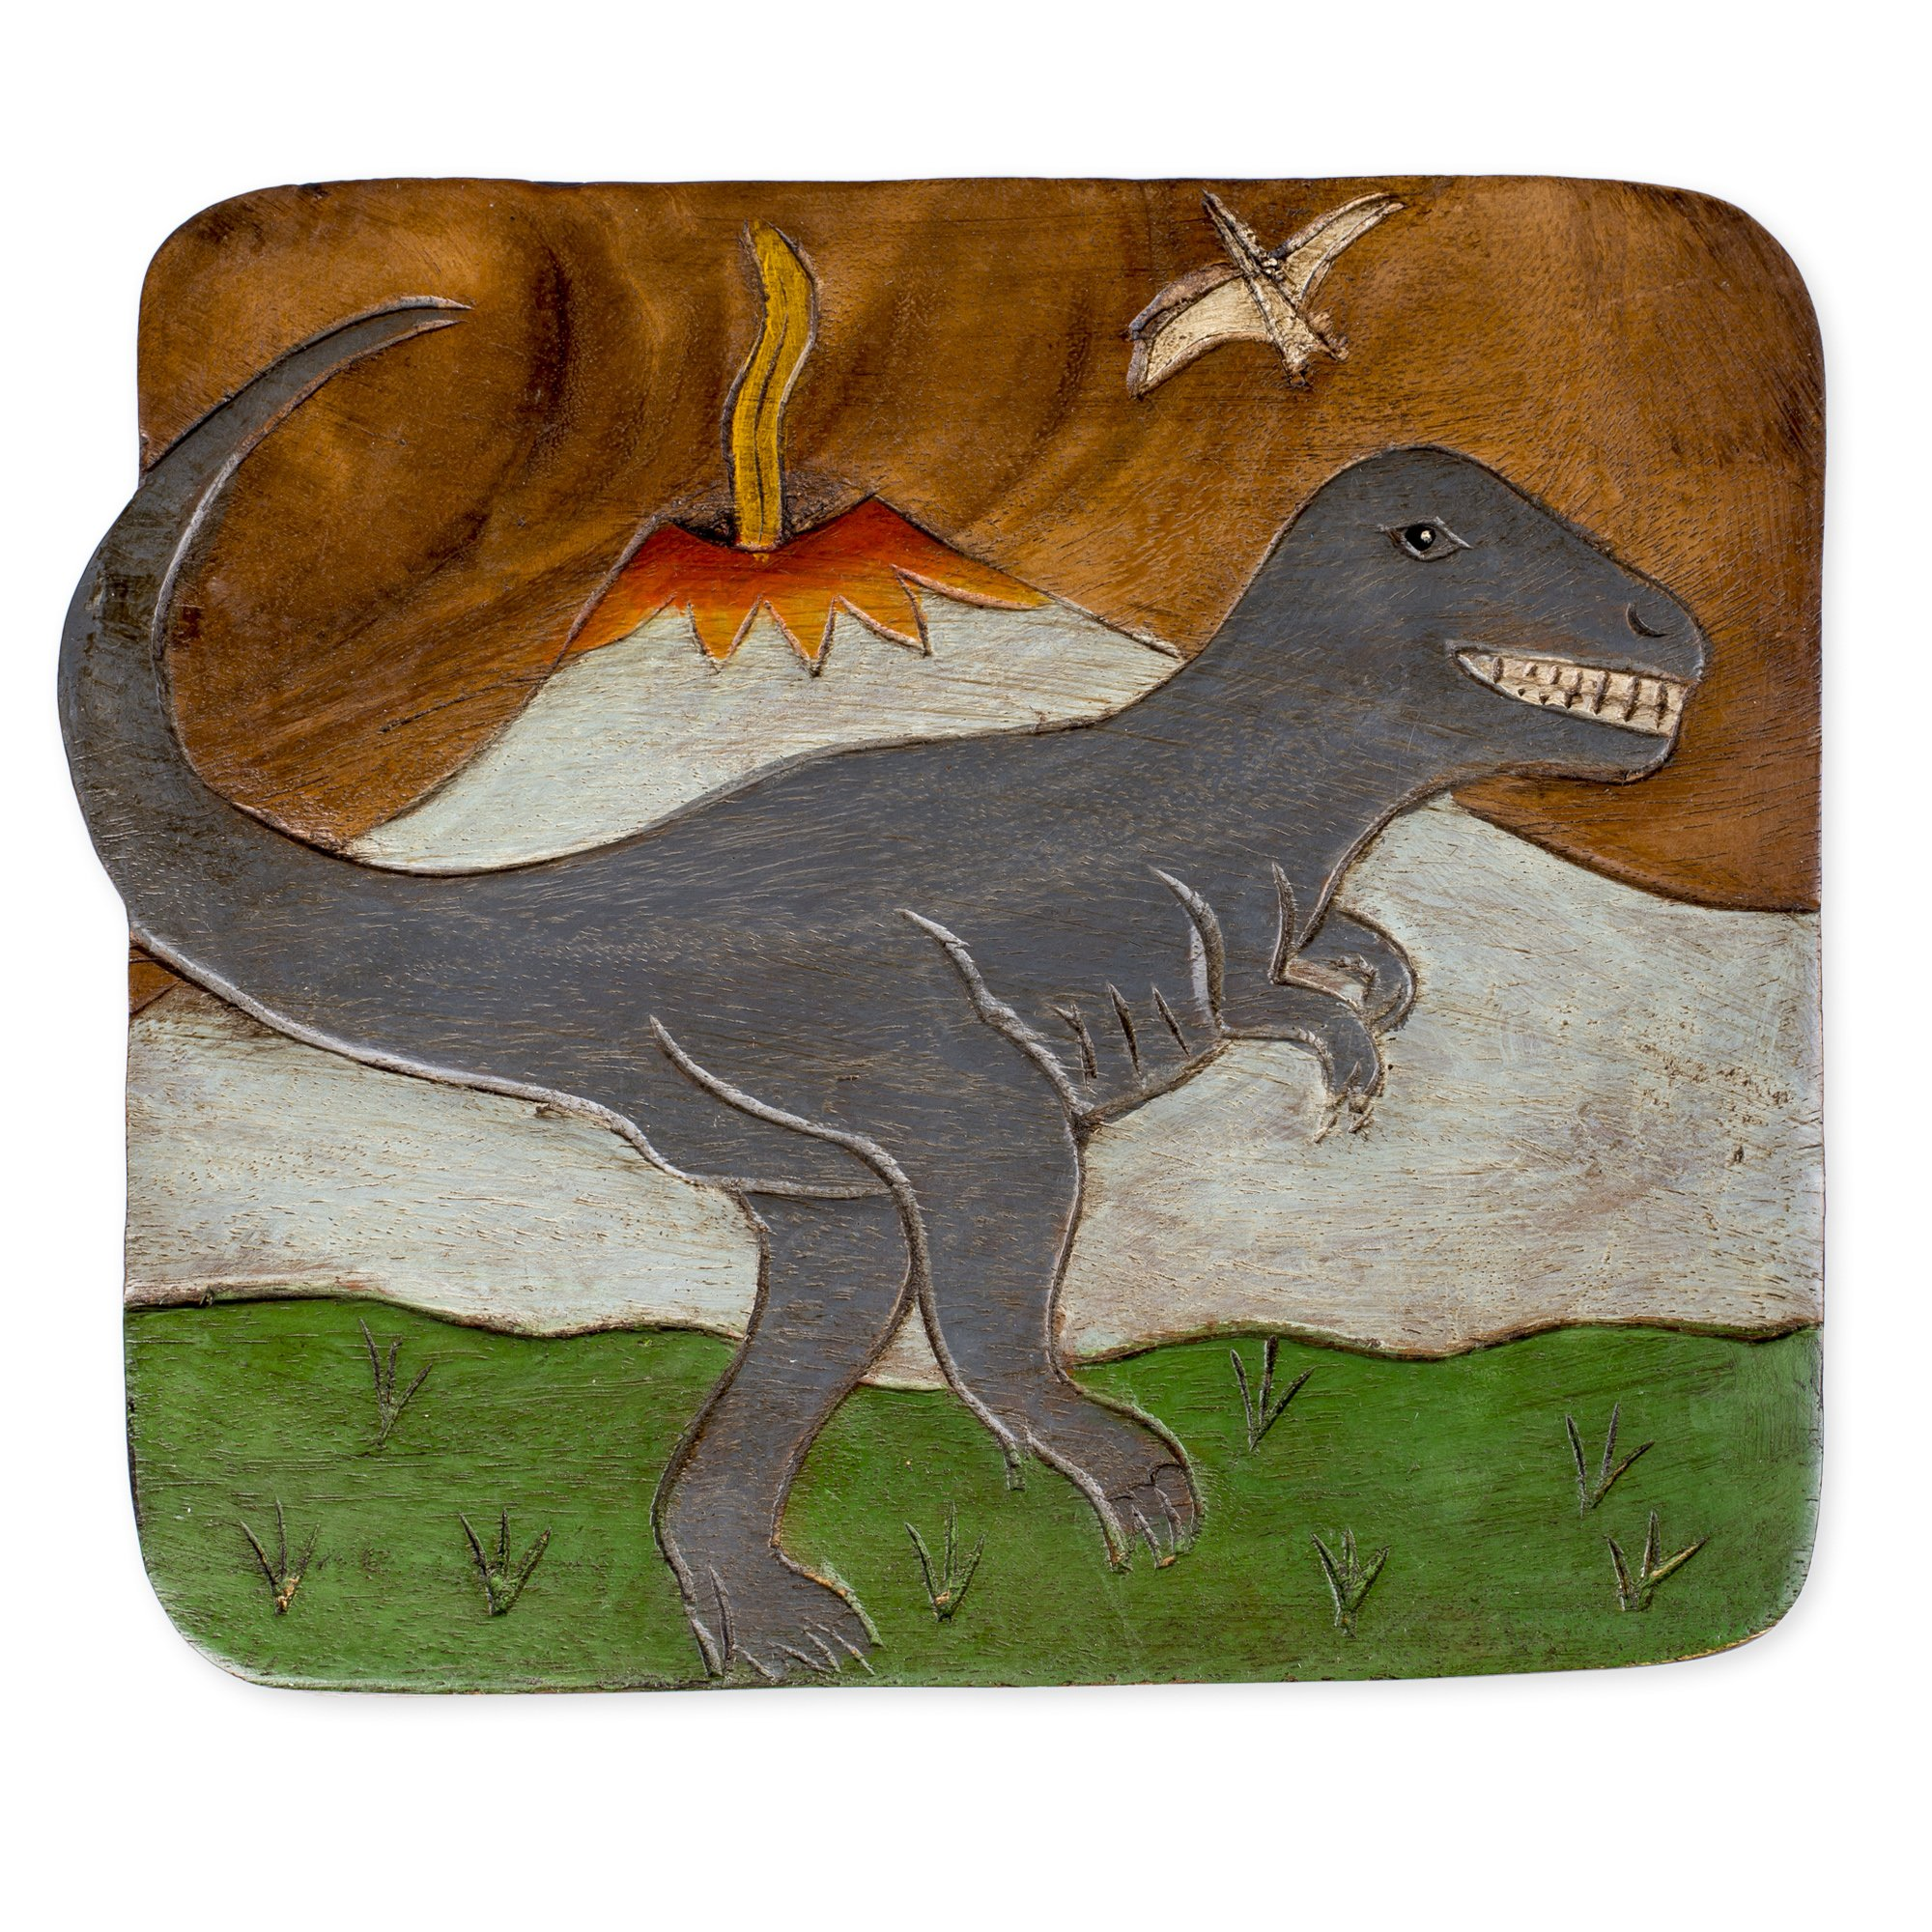 Tyrannosaurus Rex Dinosaur Design Hand Carved Acacia Hardwood Decorative Short Stool by Sea Island Imports (Image #2)